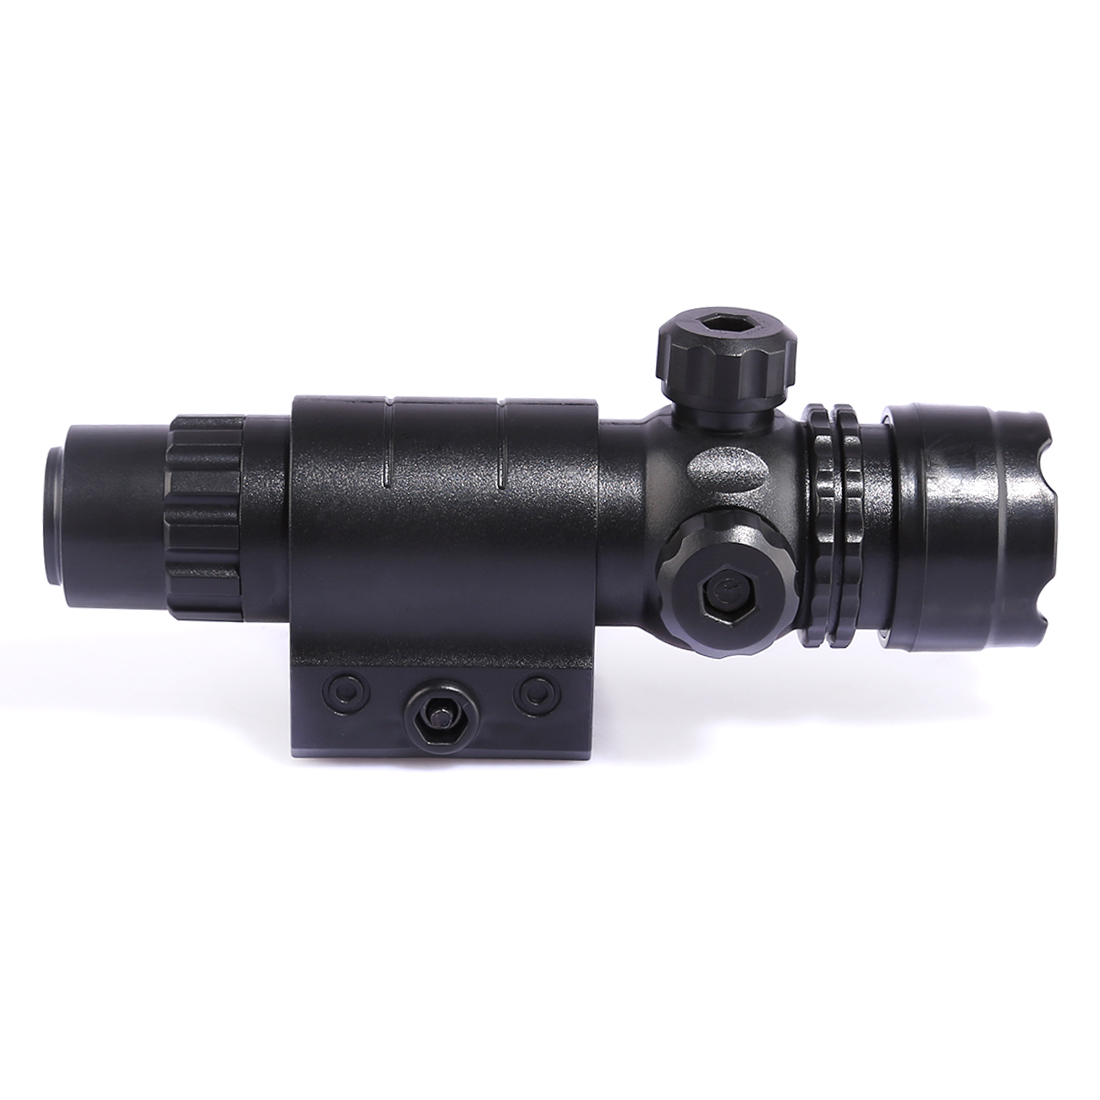 Tactical Plastic Adjustable Infrared Laser Lamp Light For Nerf Black Front Tube Decoration